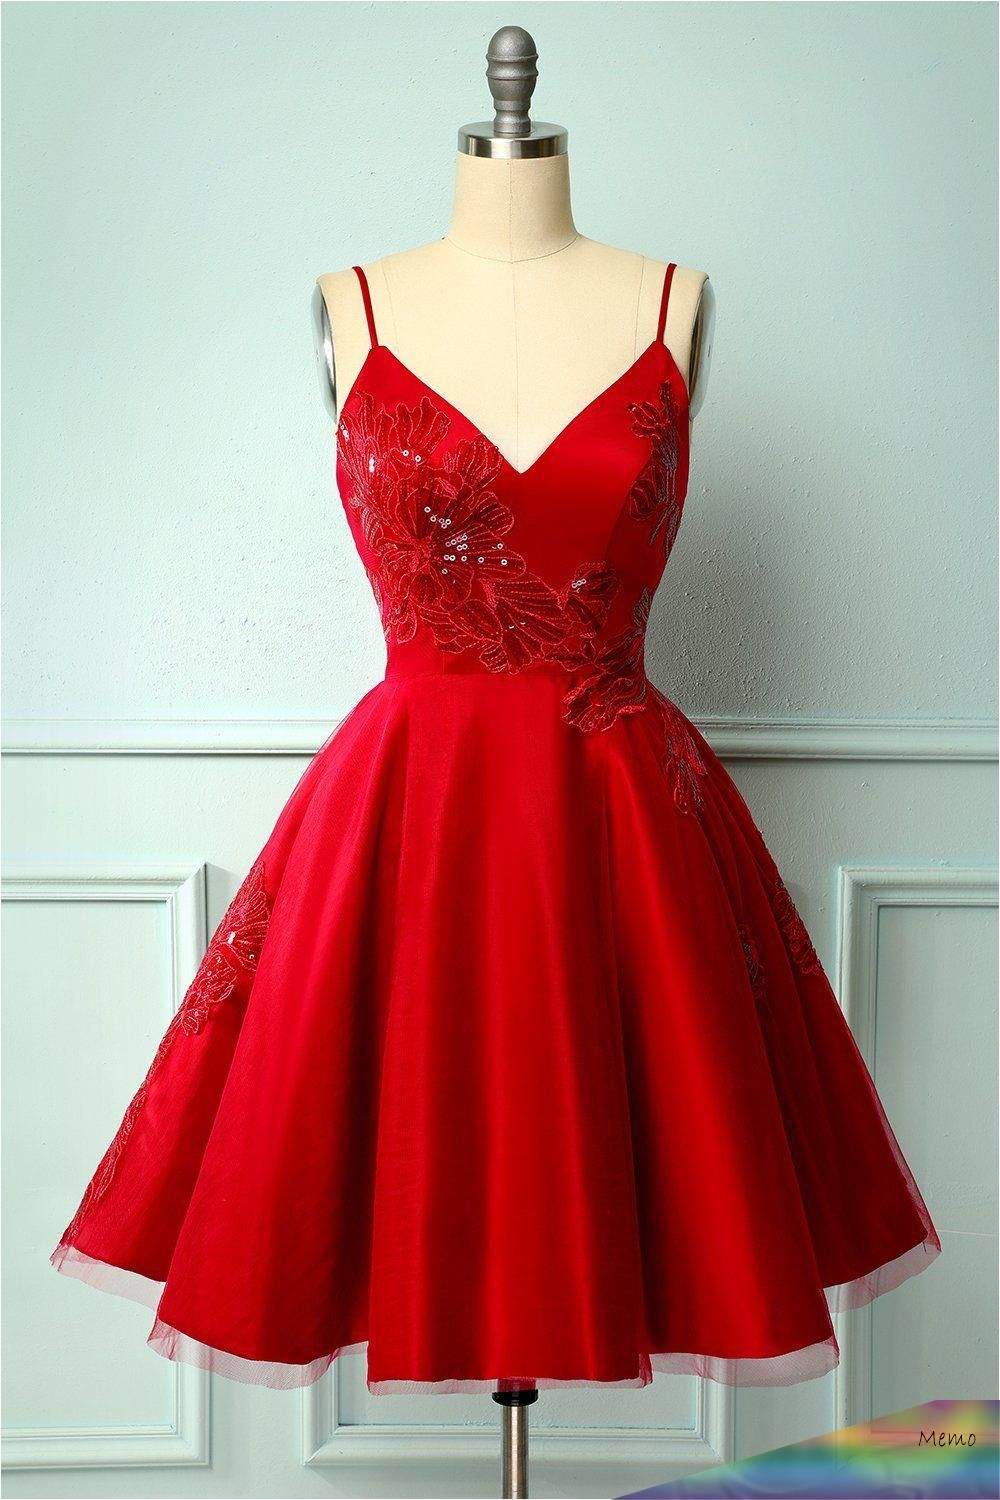 stylish and unique, this red dress embroidered with a floral